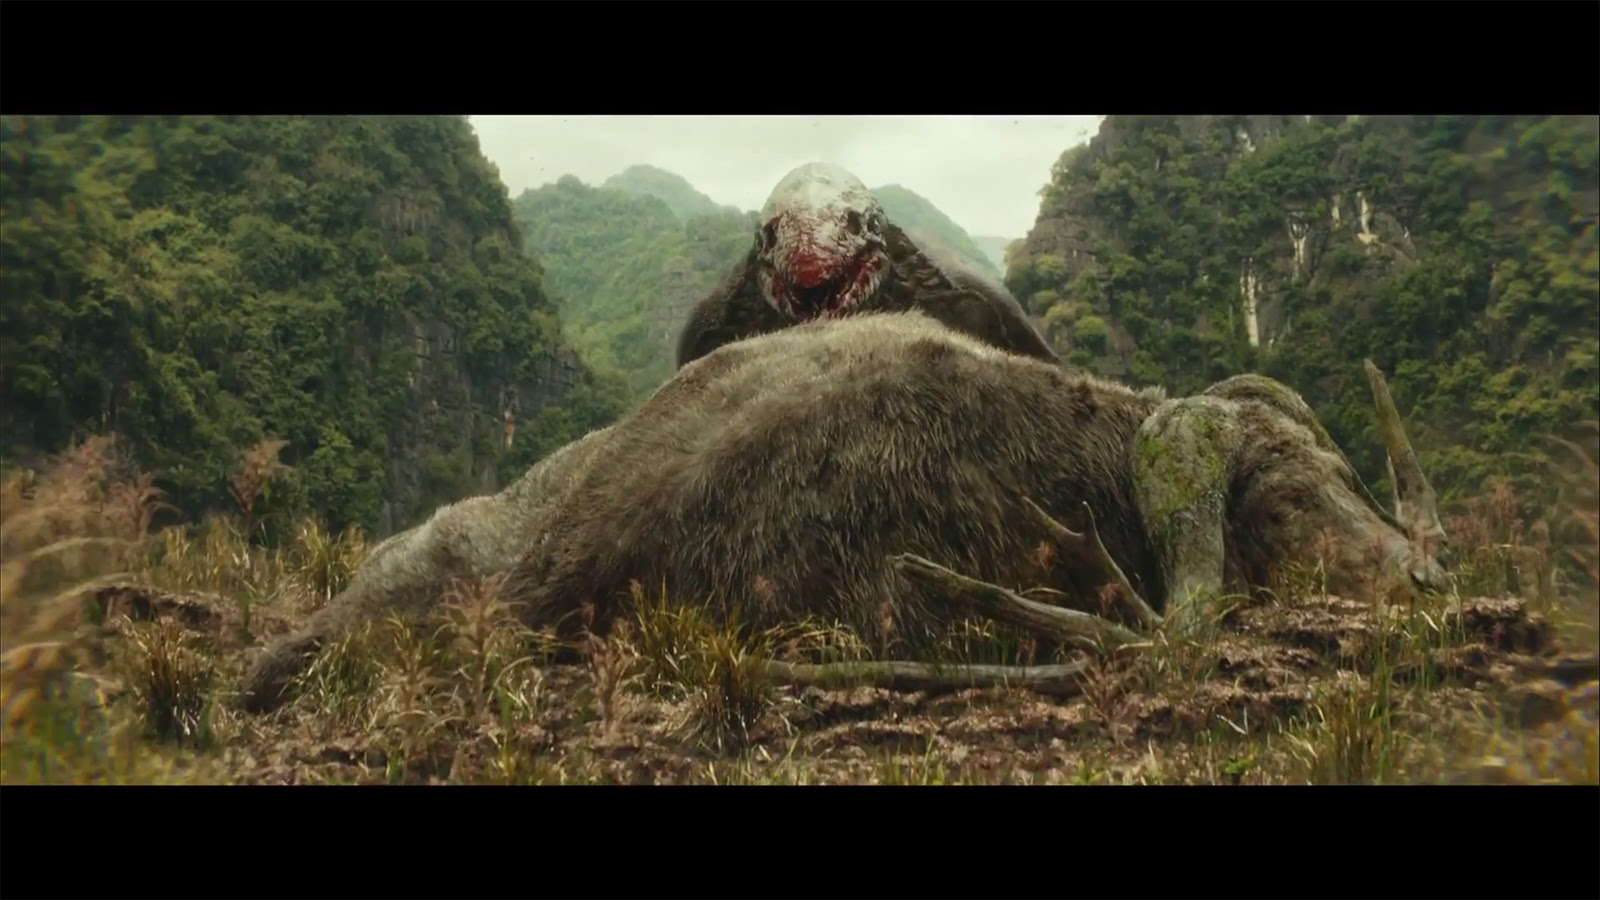 Download Kong Skull Island Wallpapers To Your Cell Phone 1600x900